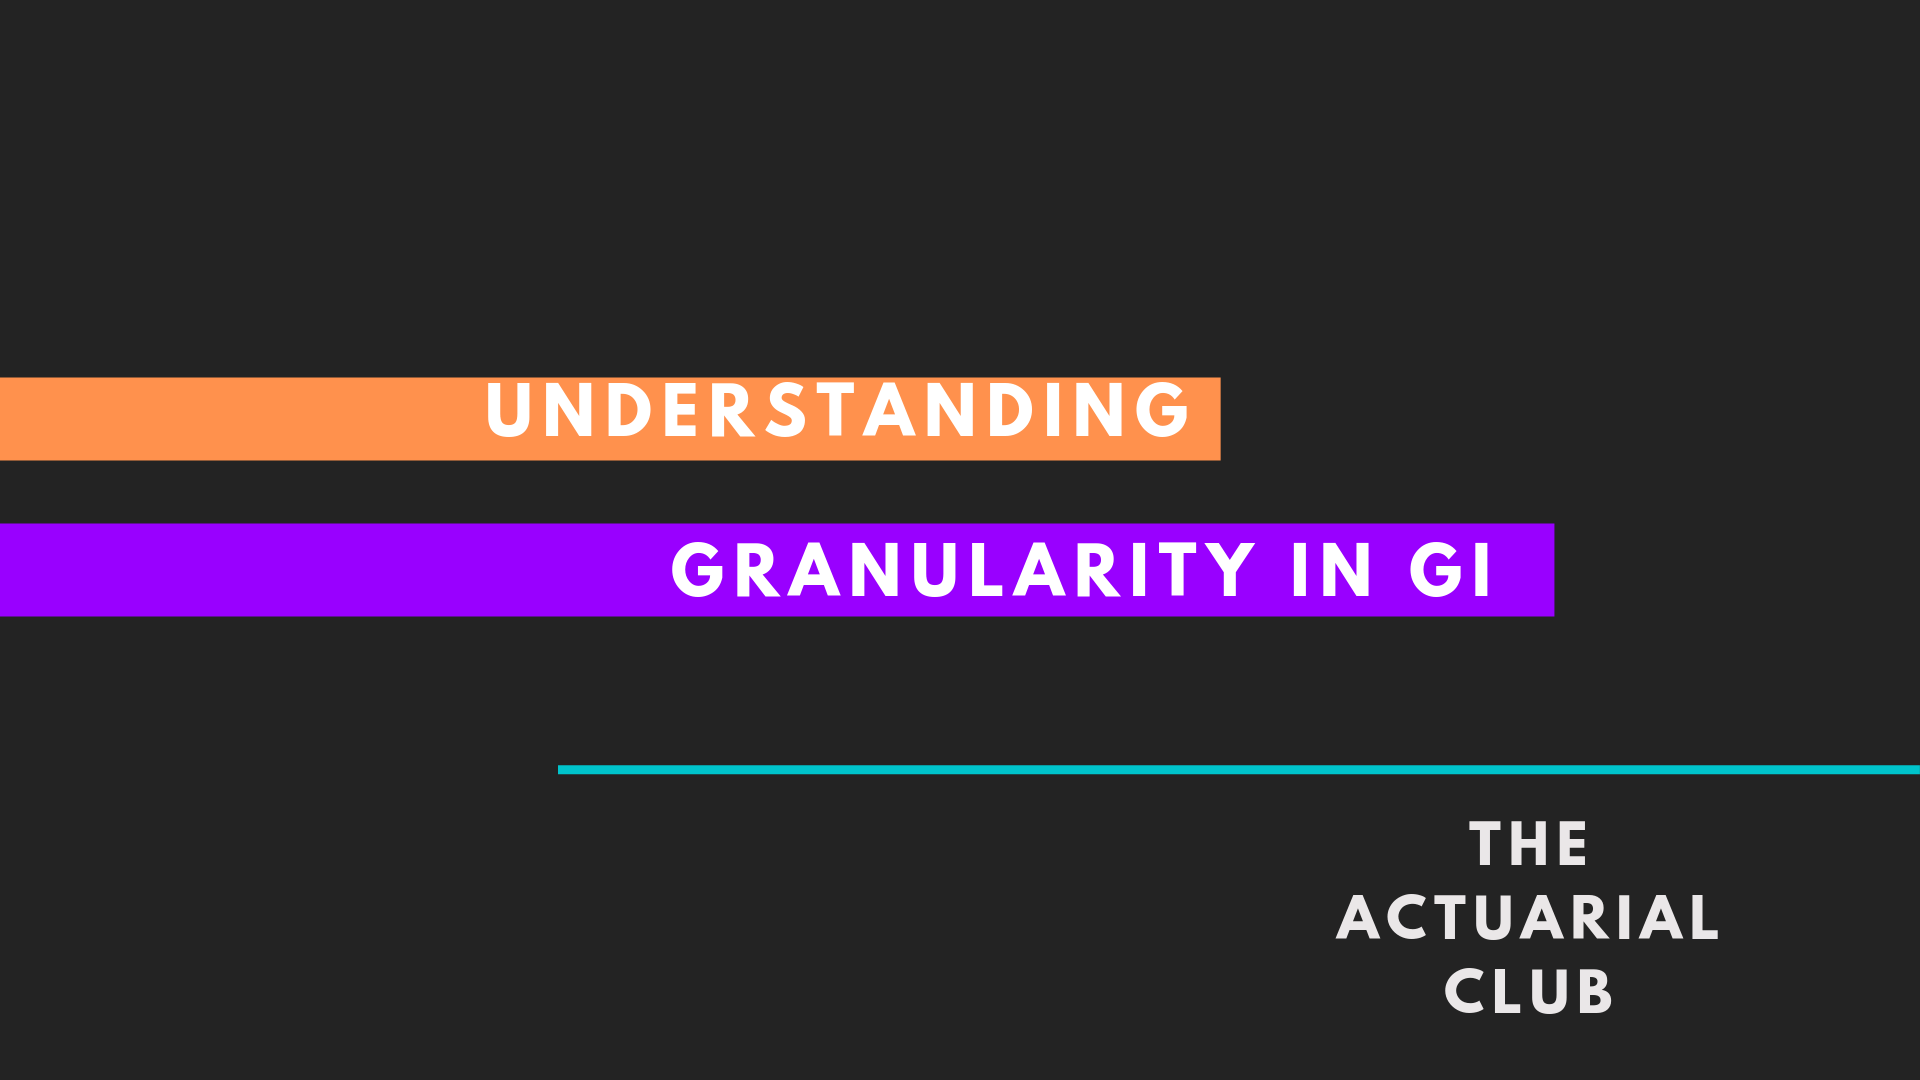 Granularity General Insurance